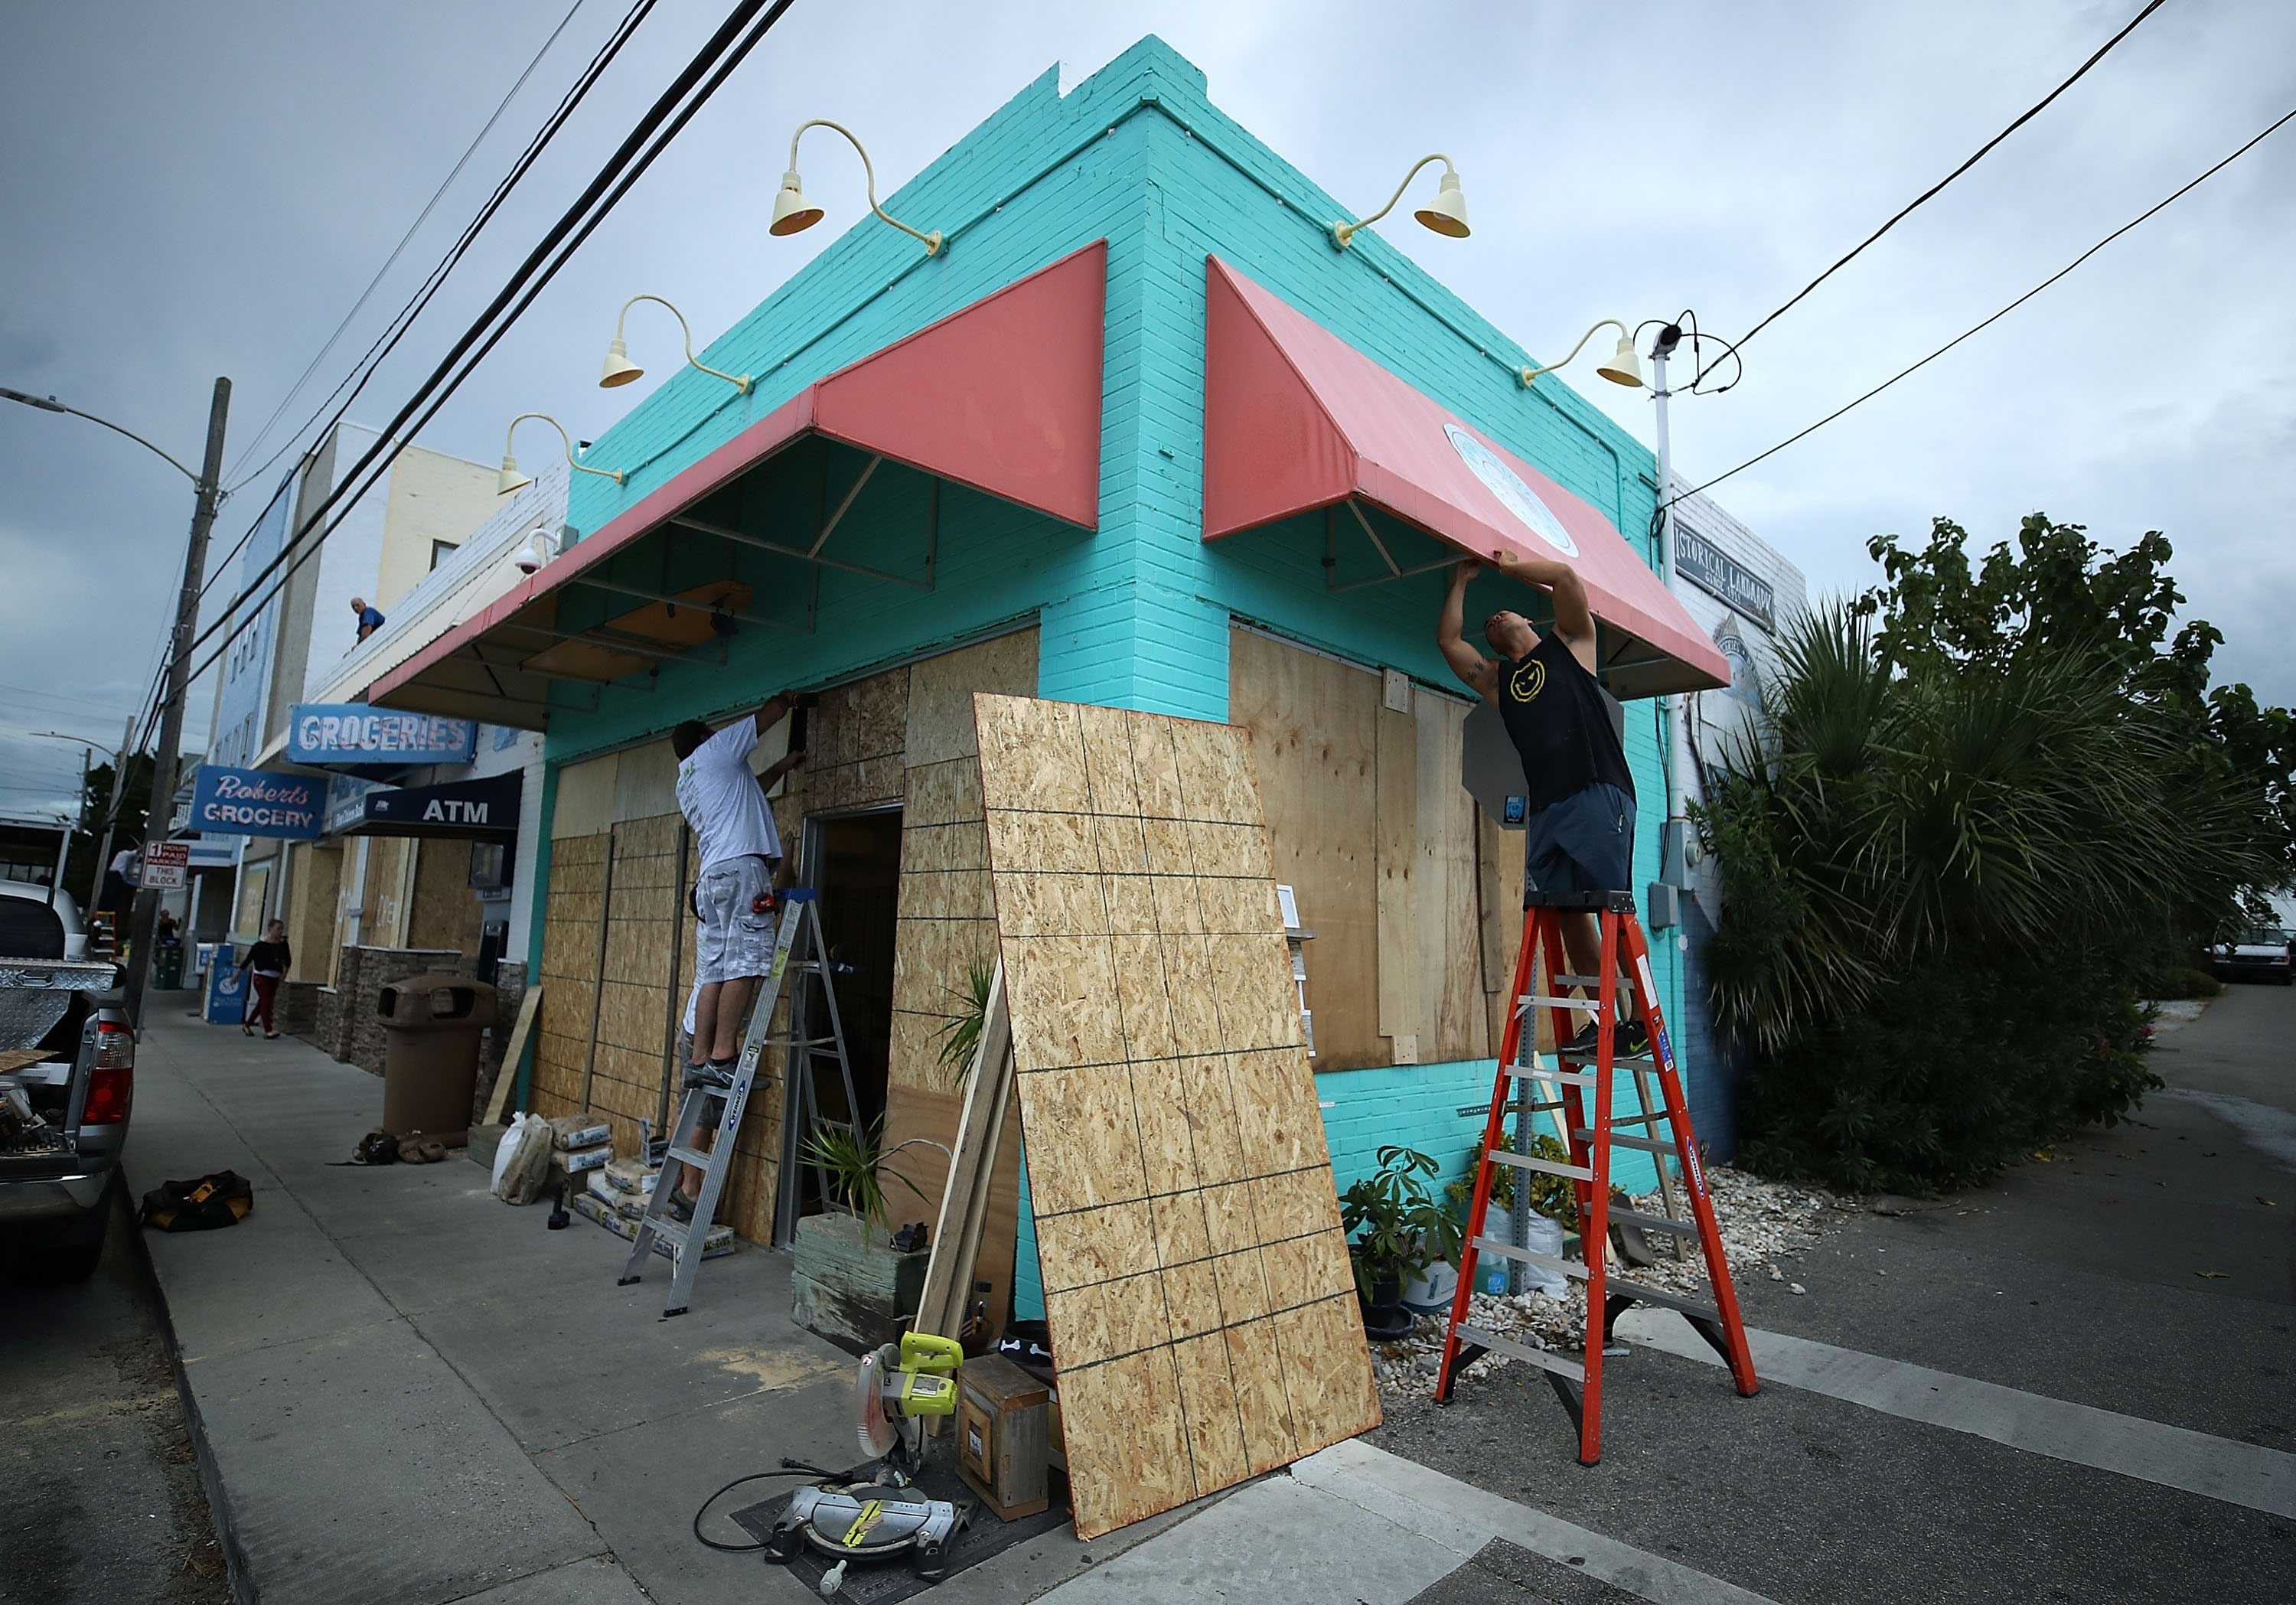 <div class='meta'><div class='origin-logo' data-origin='none'></div><span class='caption-text' data-credit='Mark Wilson/Getty Images'>Workers board up the Wrightsville Beach Art Co. while preparing for the arrival of Hurricane Florence on September 11, 2018 in Wrightsville Beach, N.C.</span></div>